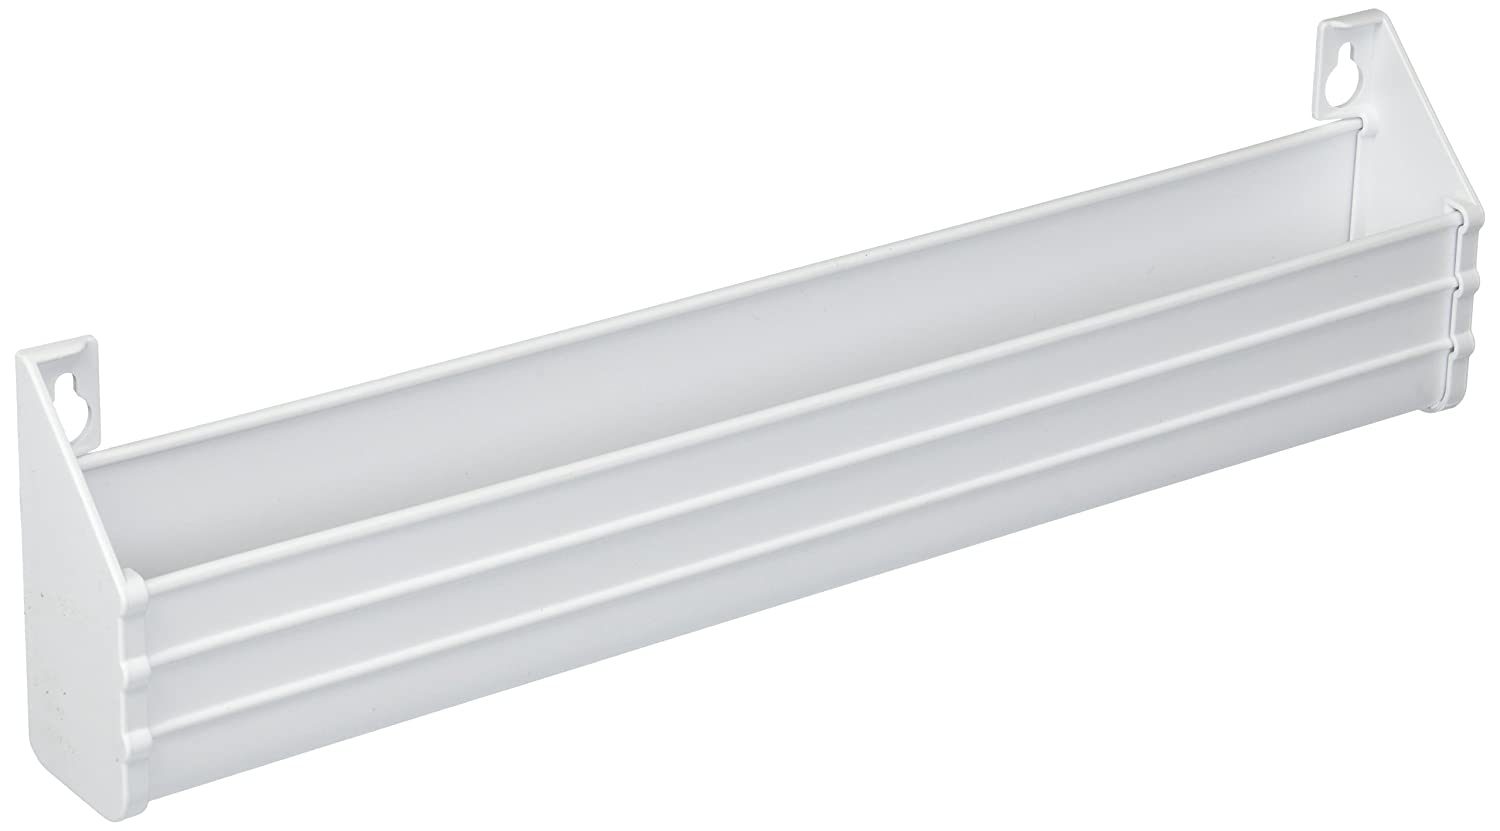 Rev-A-Shelf 14 in White Polymer Slim Series Tip-Out Tray 6542-14-11-52